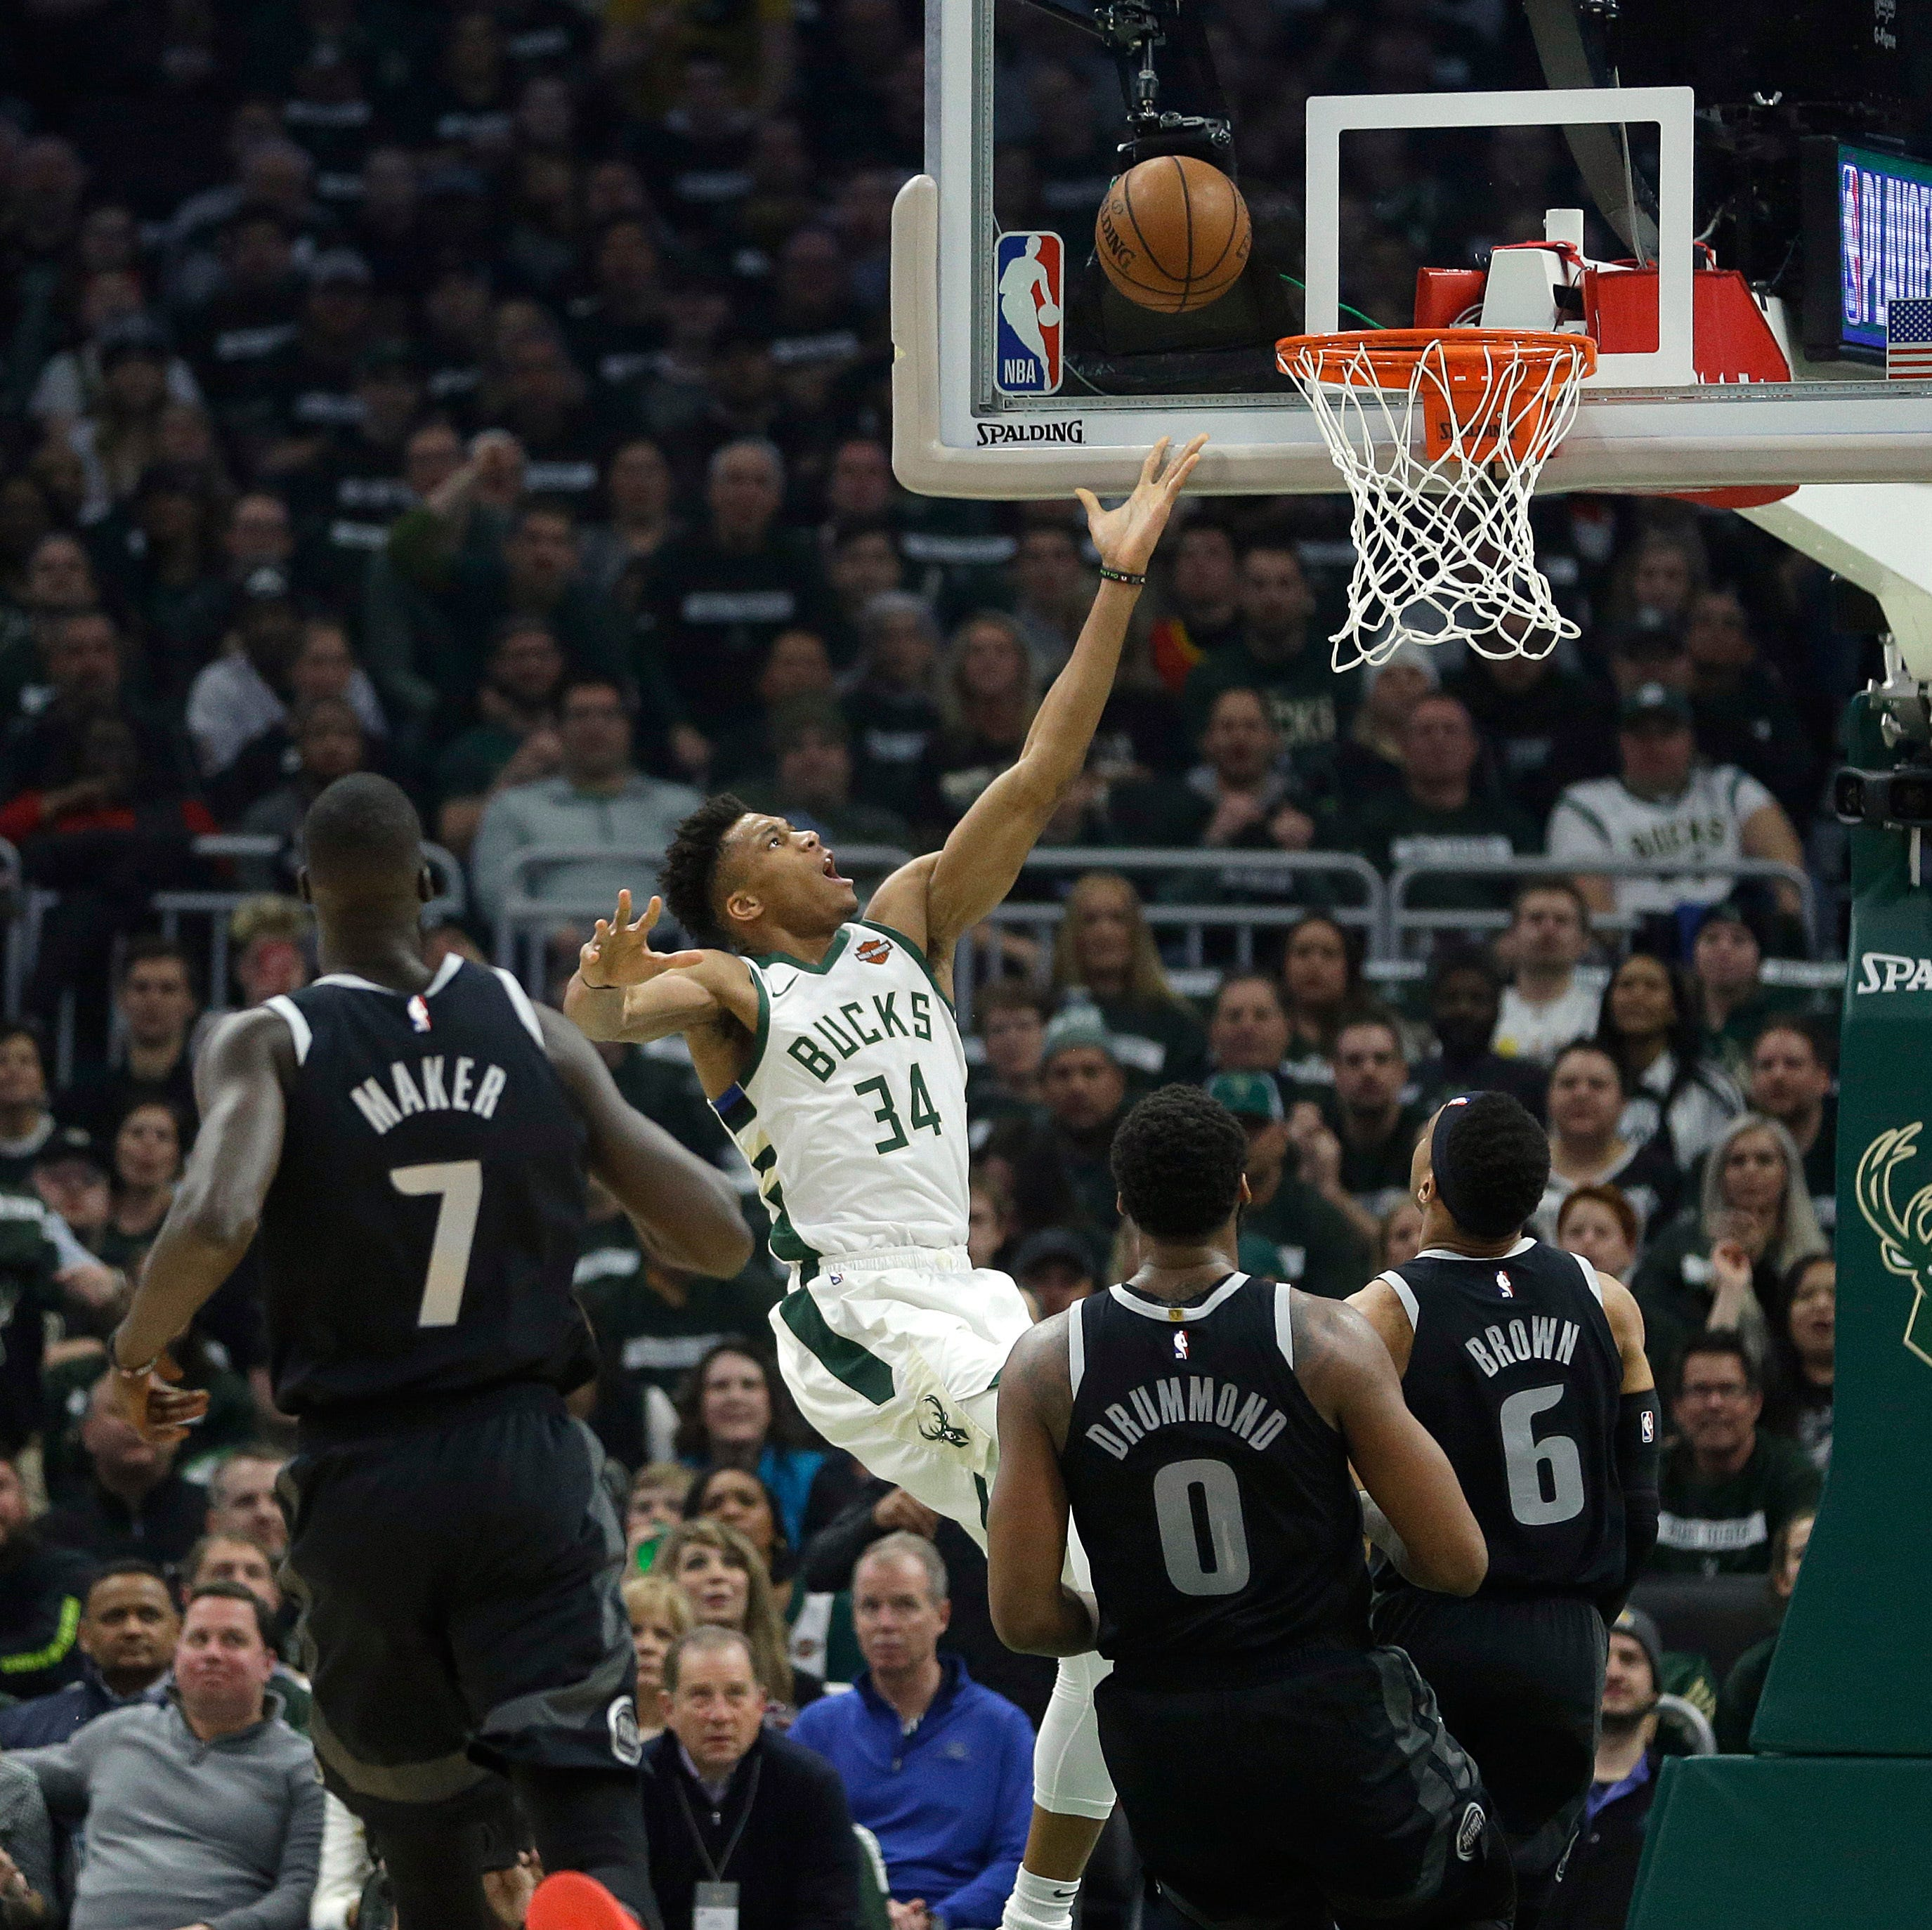 'We didn't get anything done': Bucks run over Pistons in Game 1